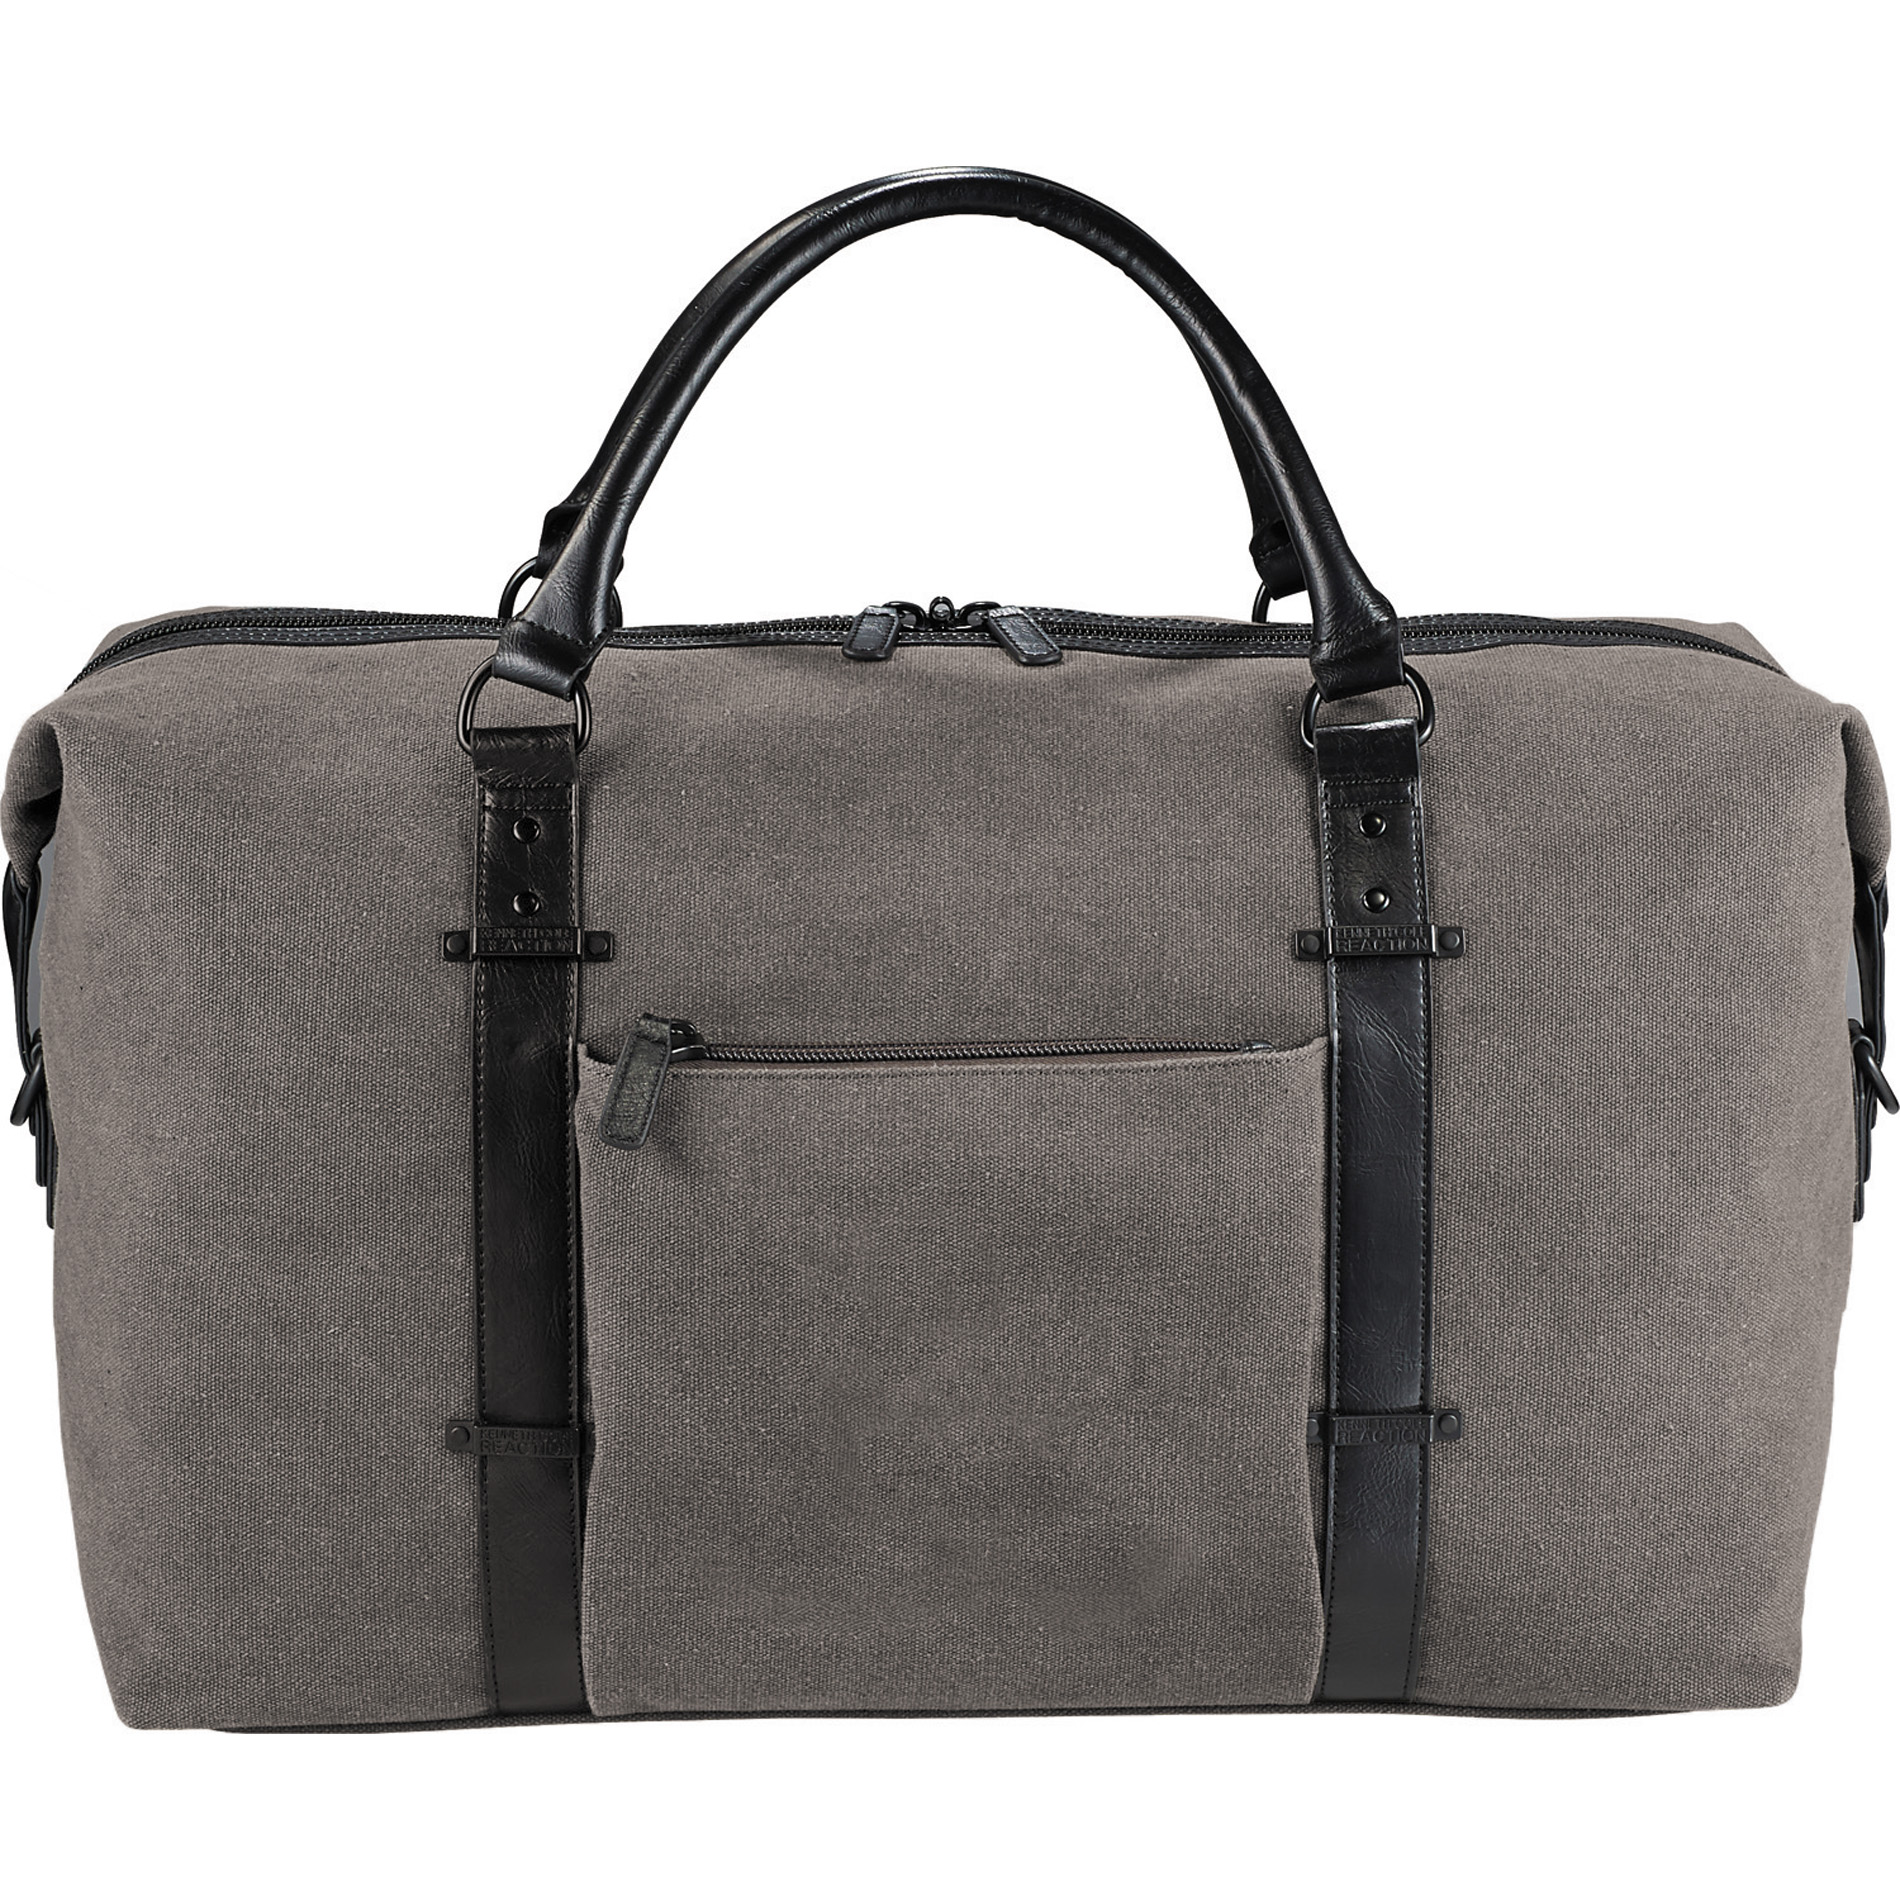 "Kenneth Cole 9950-62 - 20"" Canvas Duffel Bag"